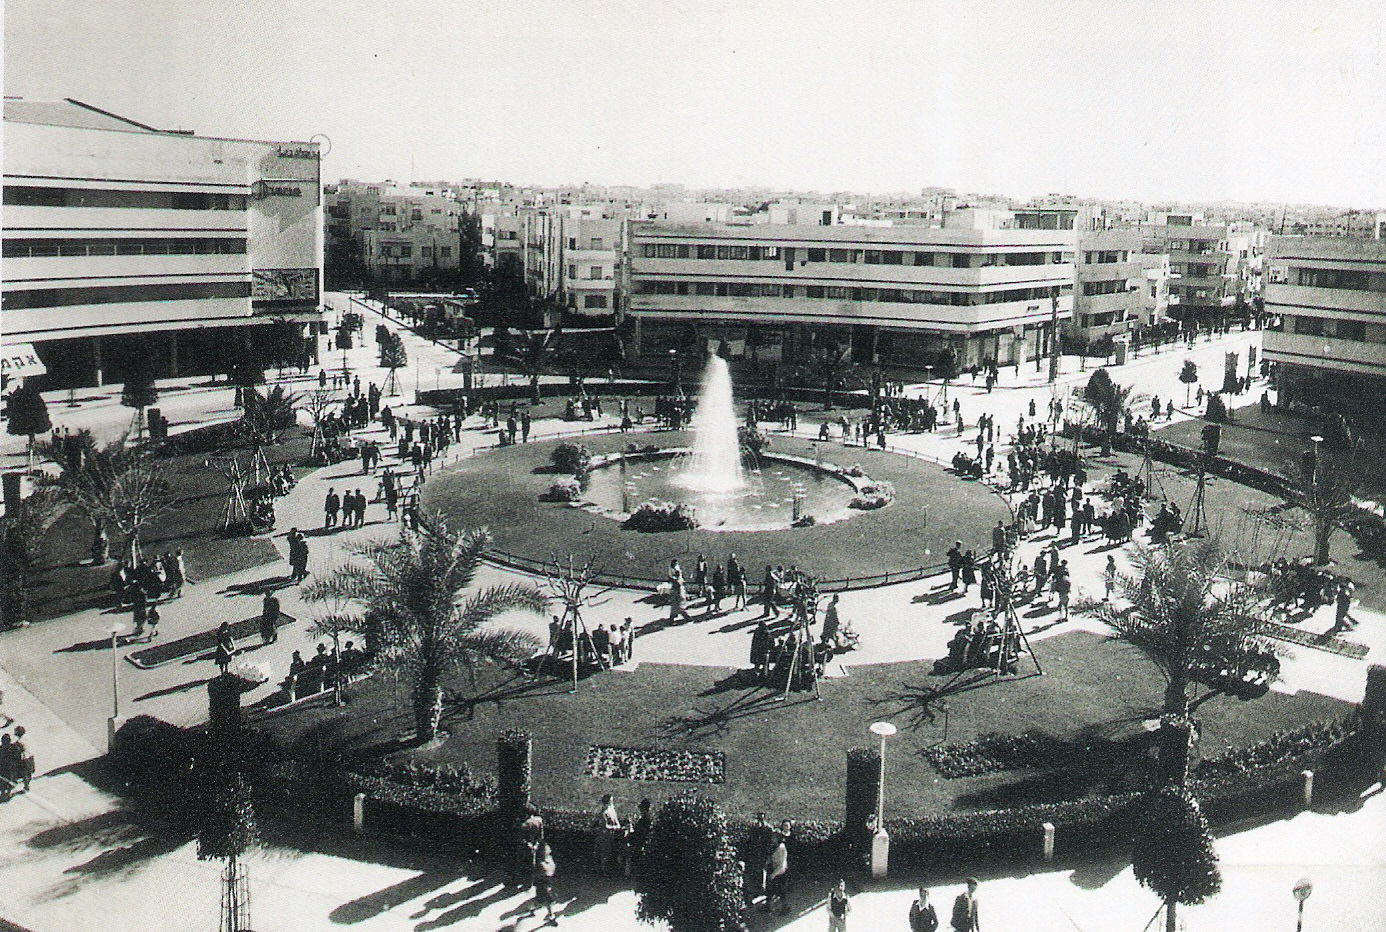 Zina Dizengoff Circle in the 1940s